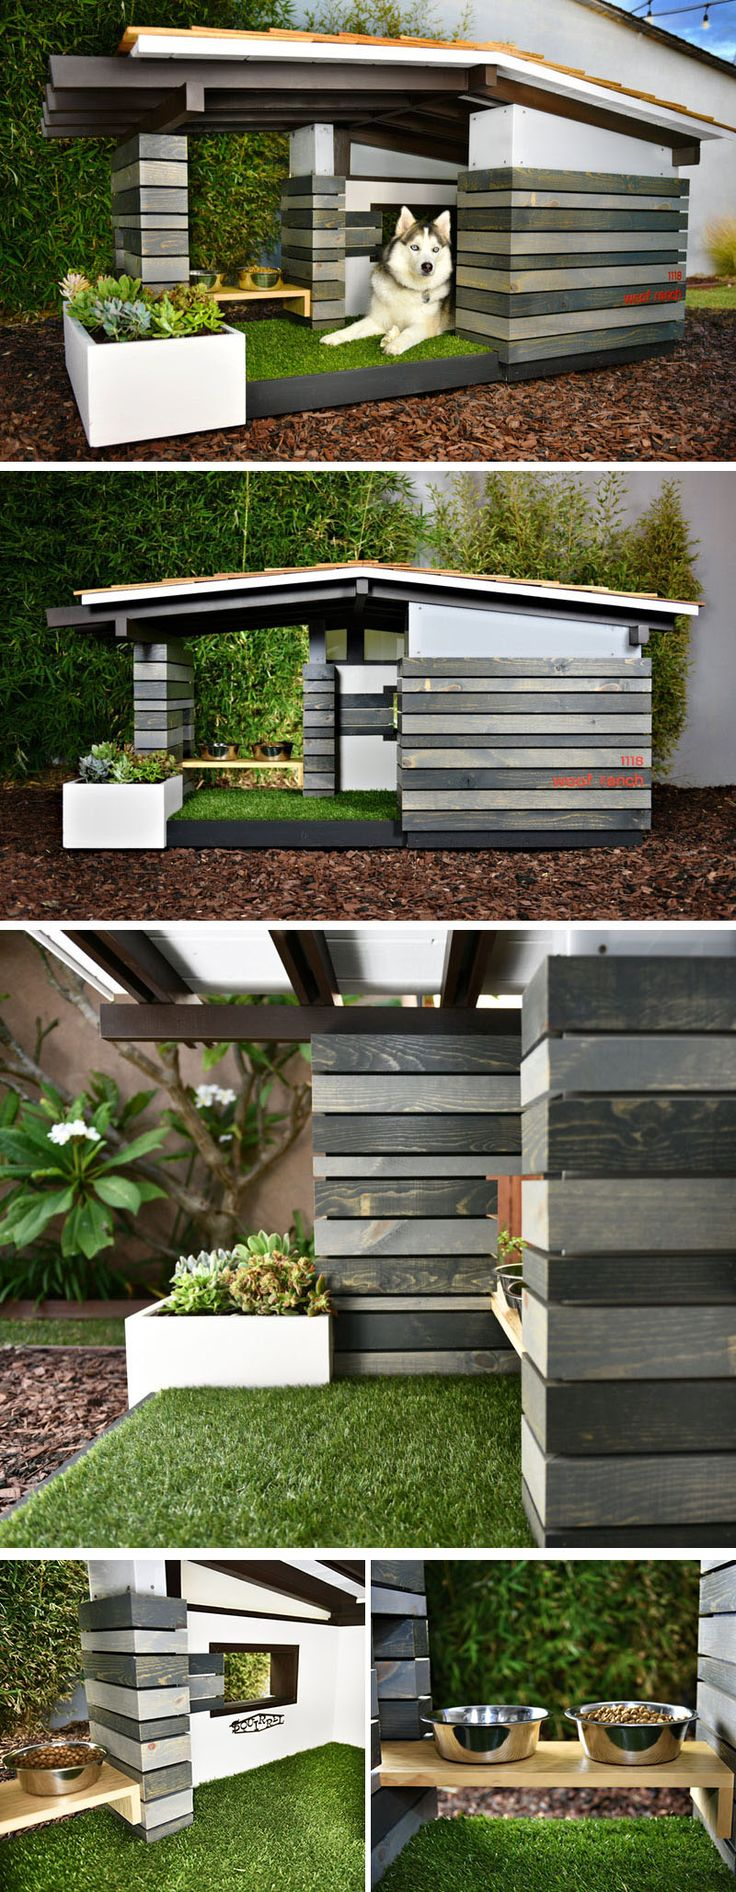 These modern dog houses are gorgeous stylish